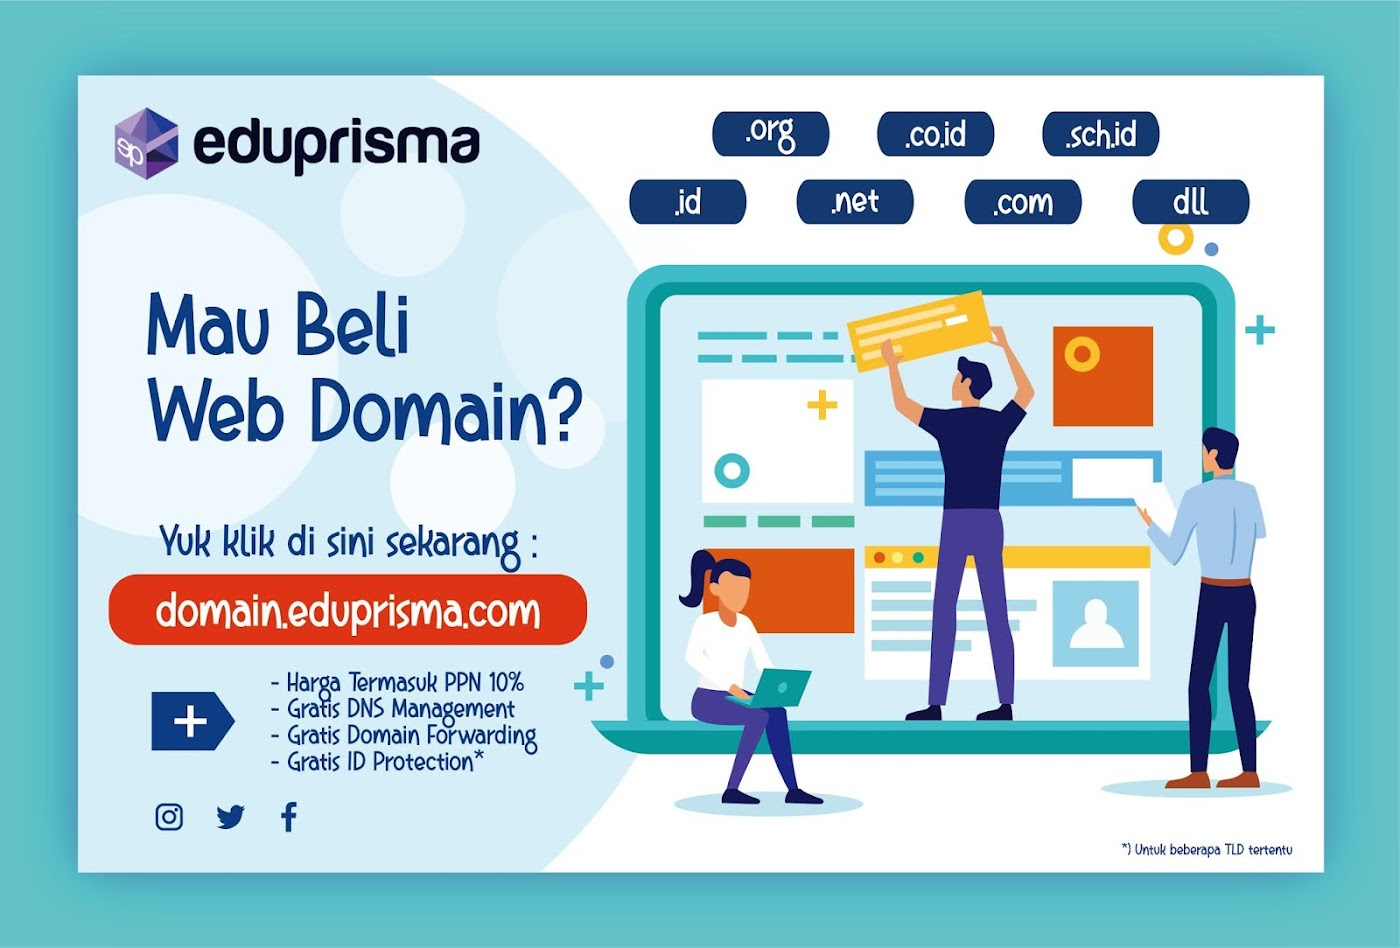 Eduprisma Web Domain & Hosting